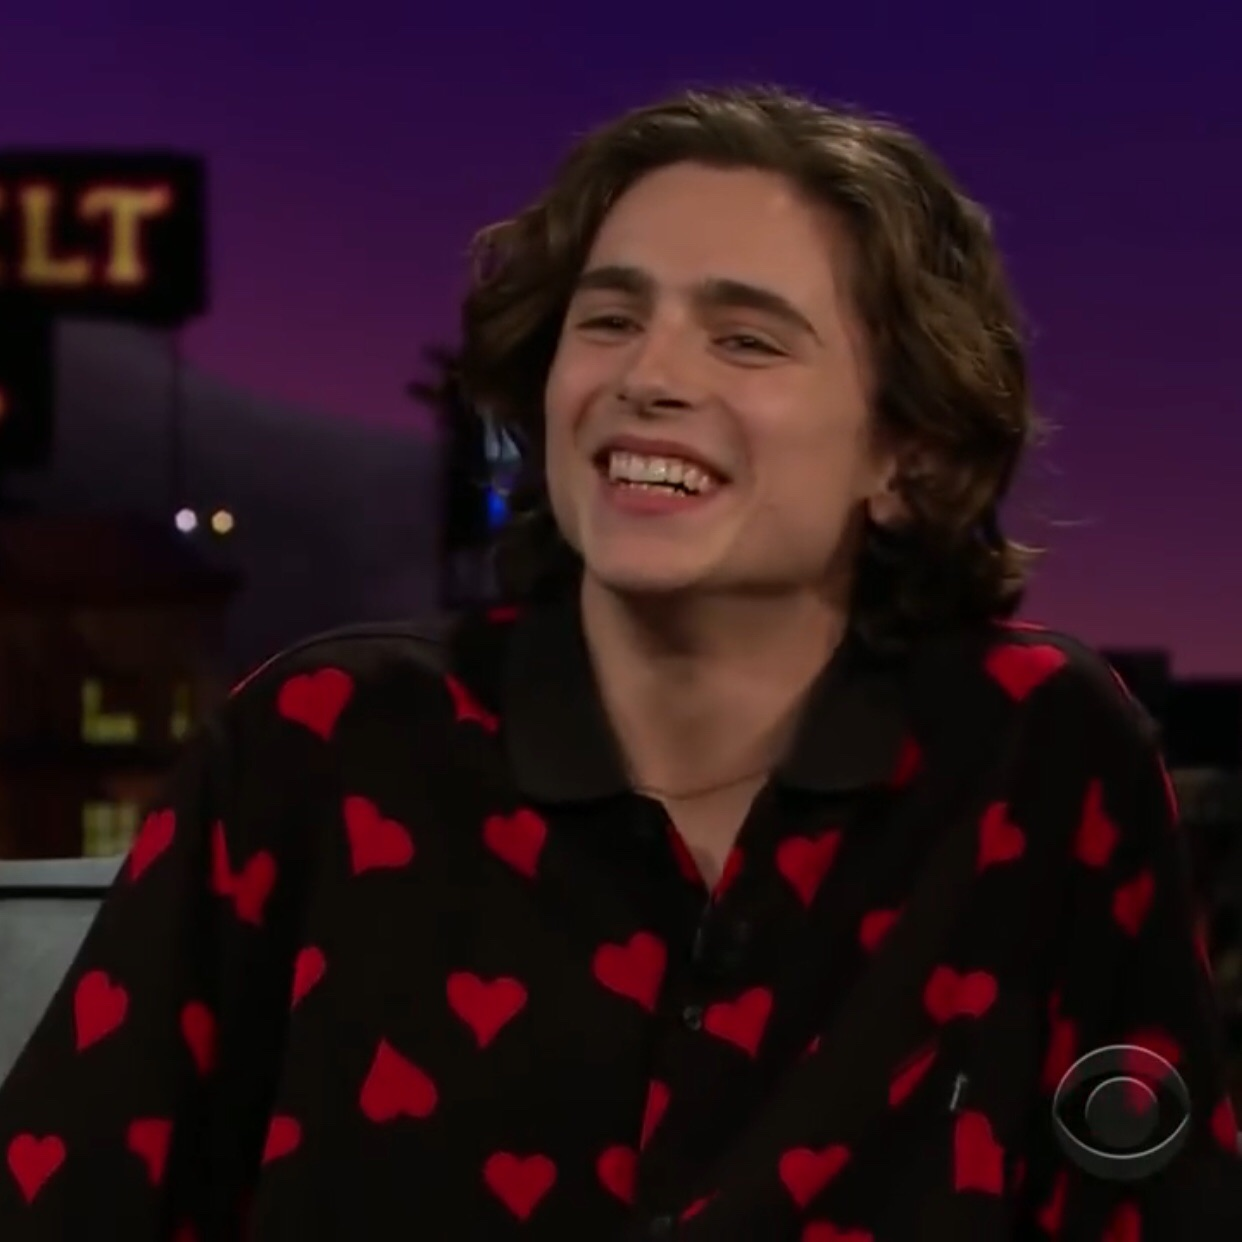 timothee chalamet, film, and icon image